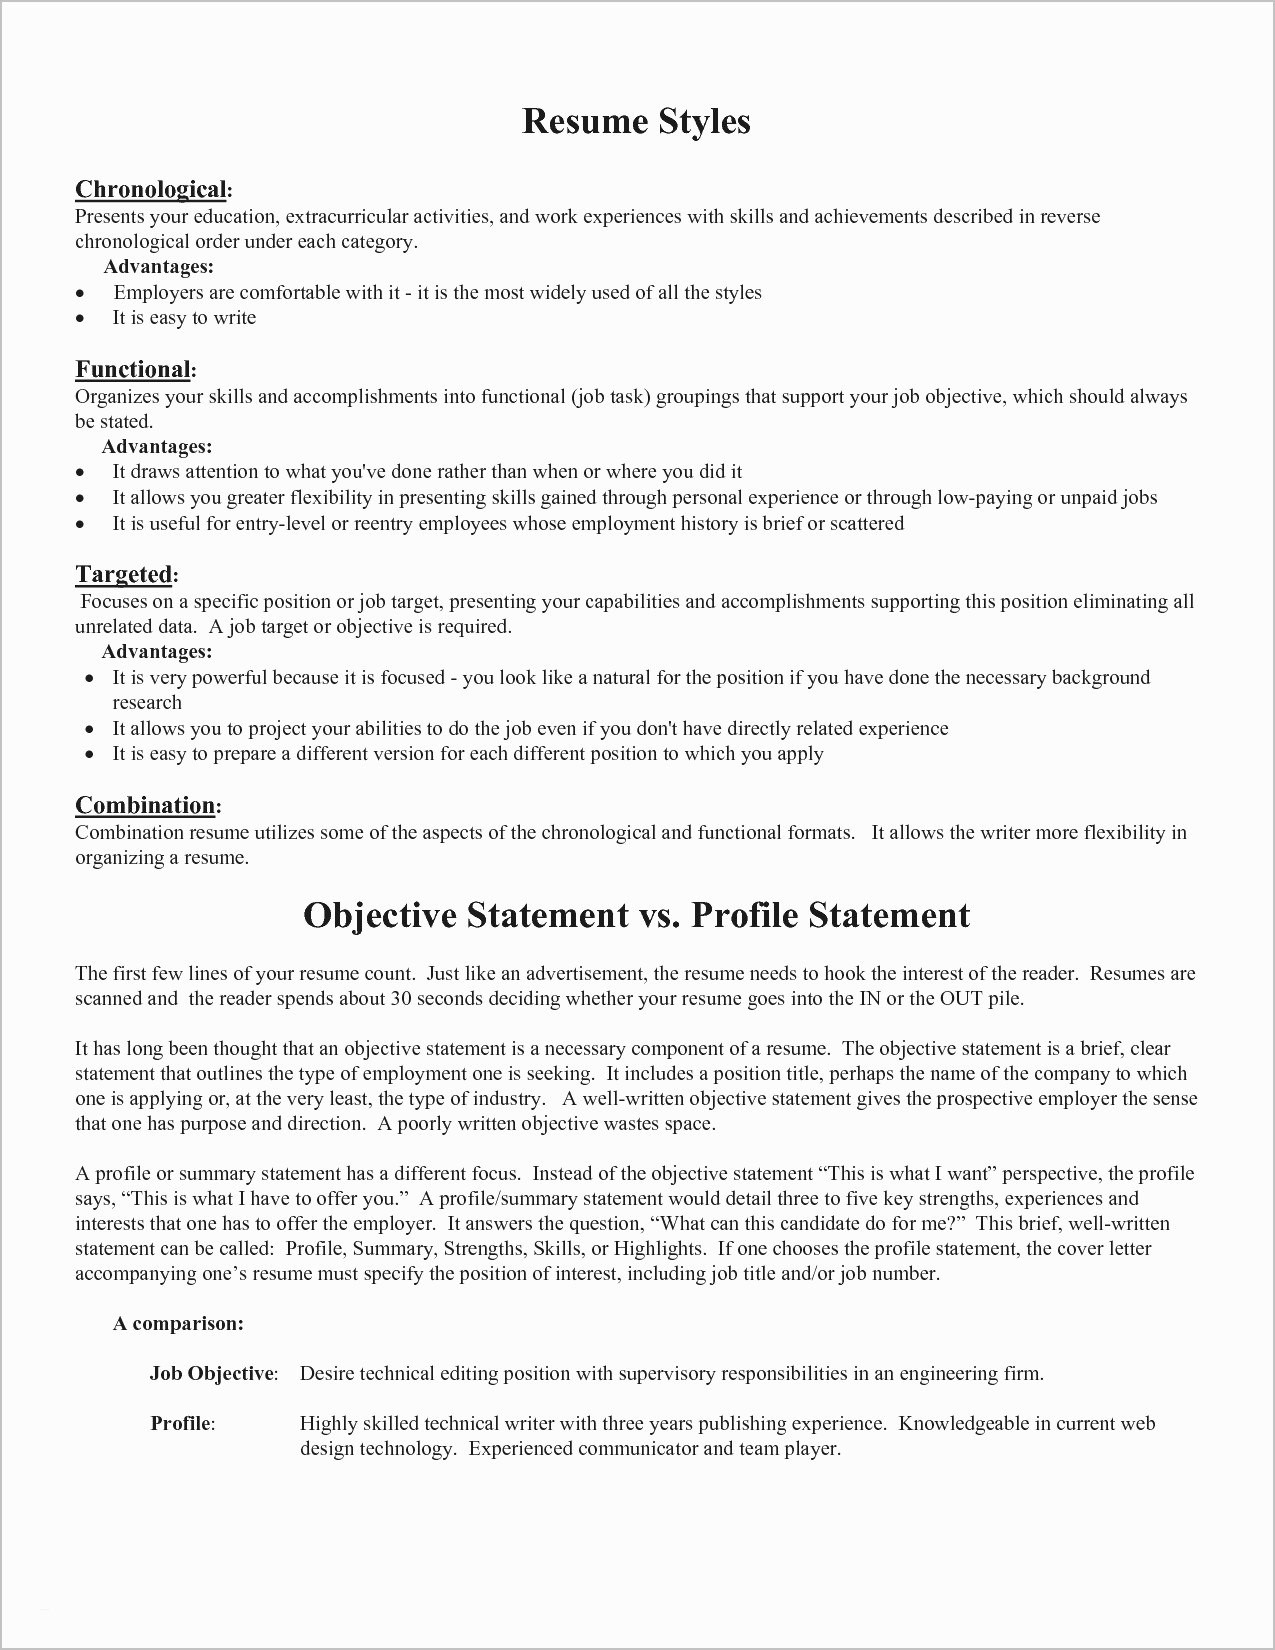 Opening Statement for Resume - Bination Resume Template for Stay at Home Mom